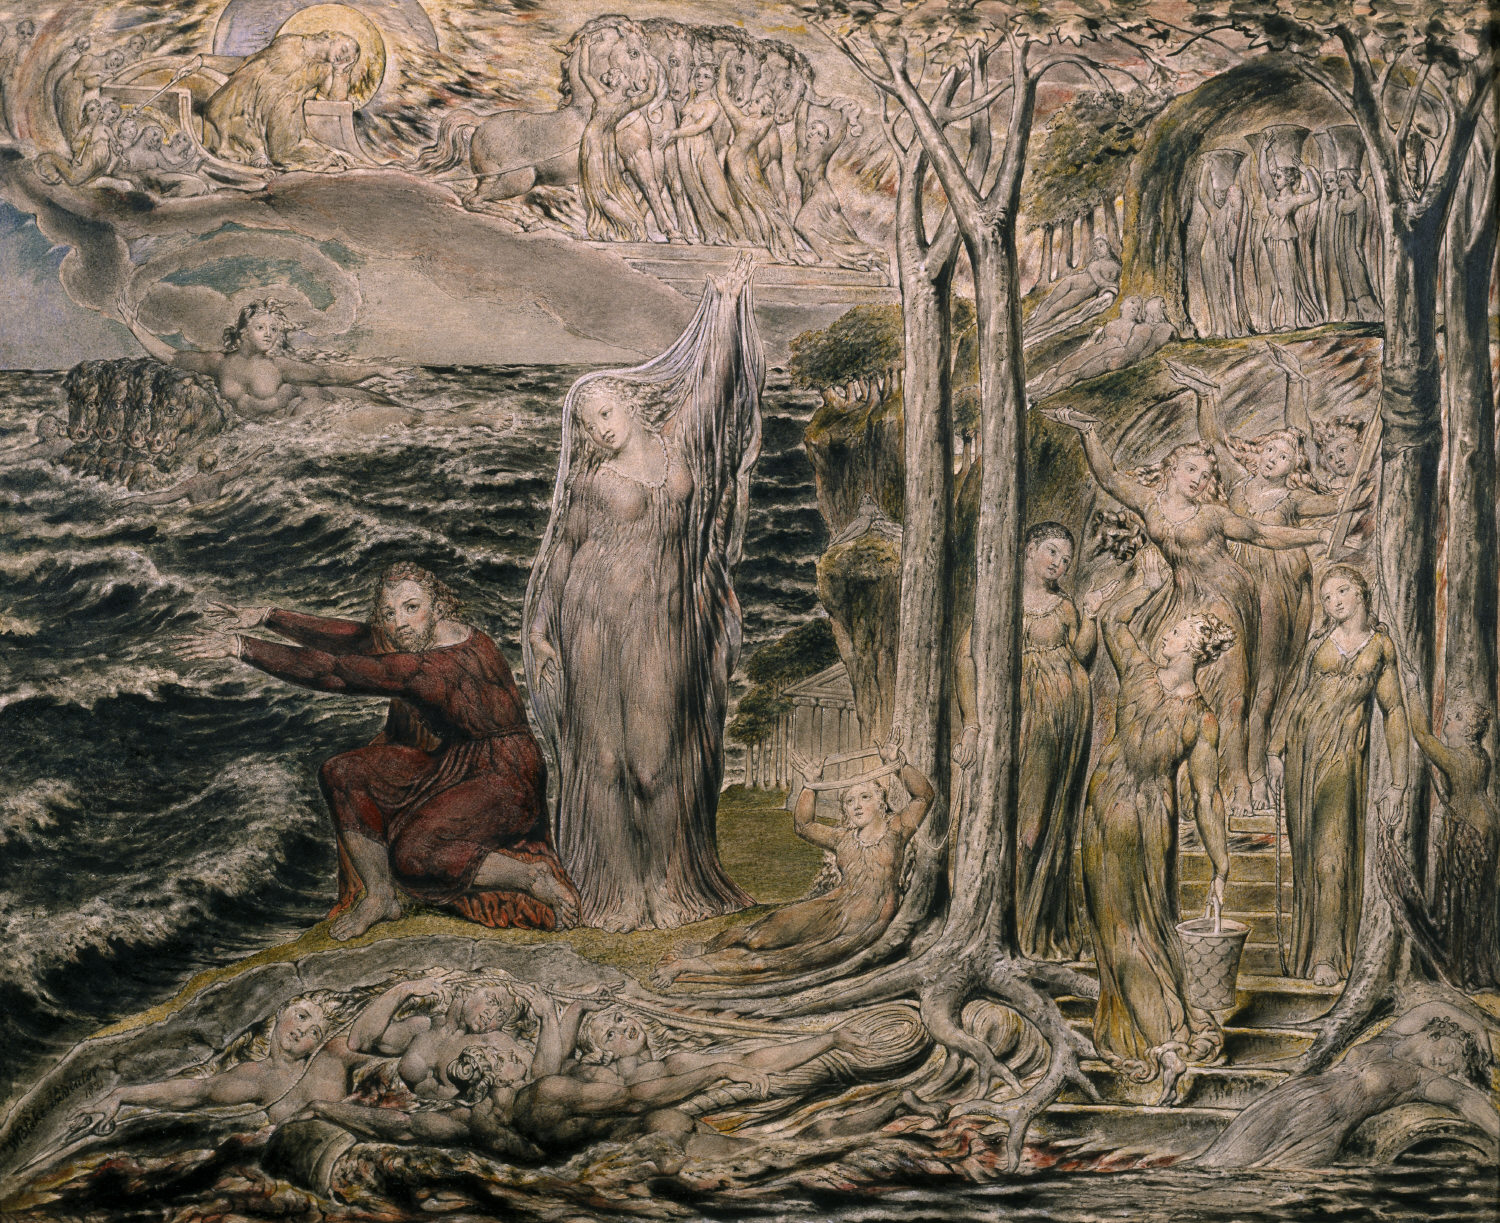 The Sea of Time and Space by William Blake